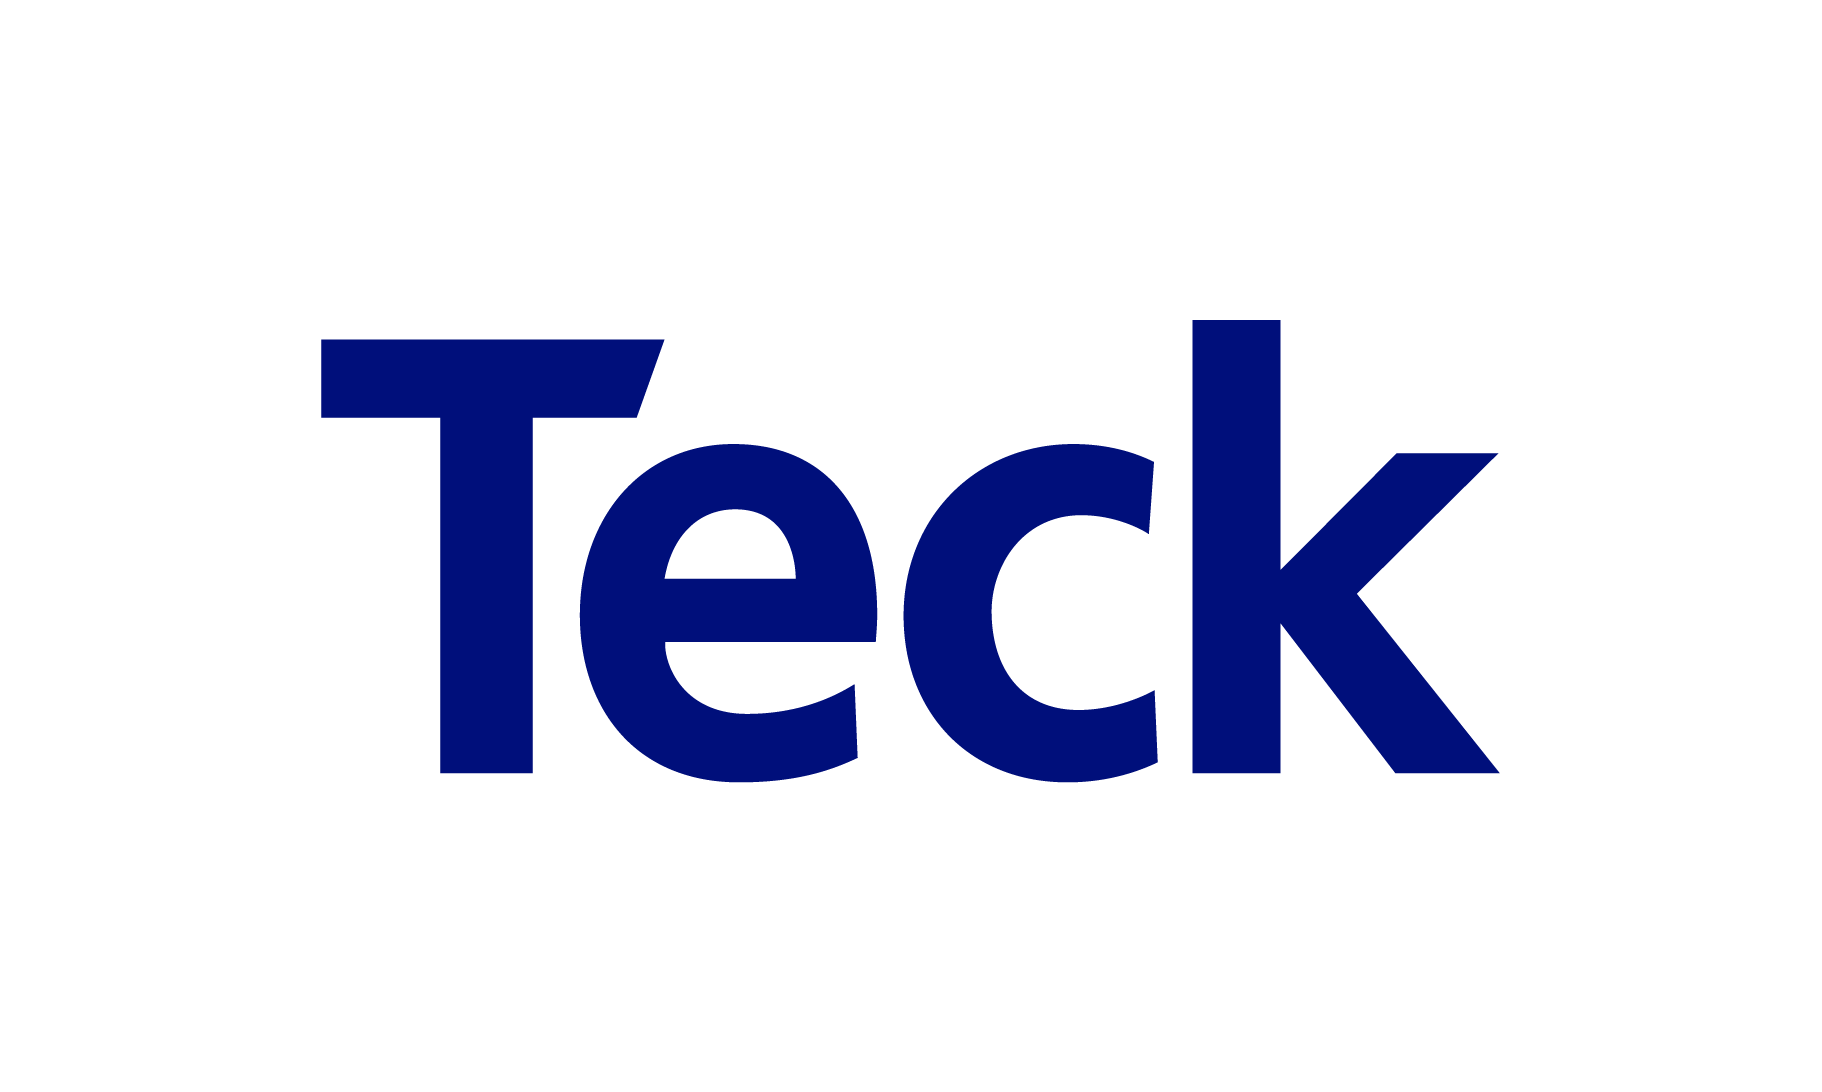 Teck Reports Delays to Red Dog Concentrate Shipments